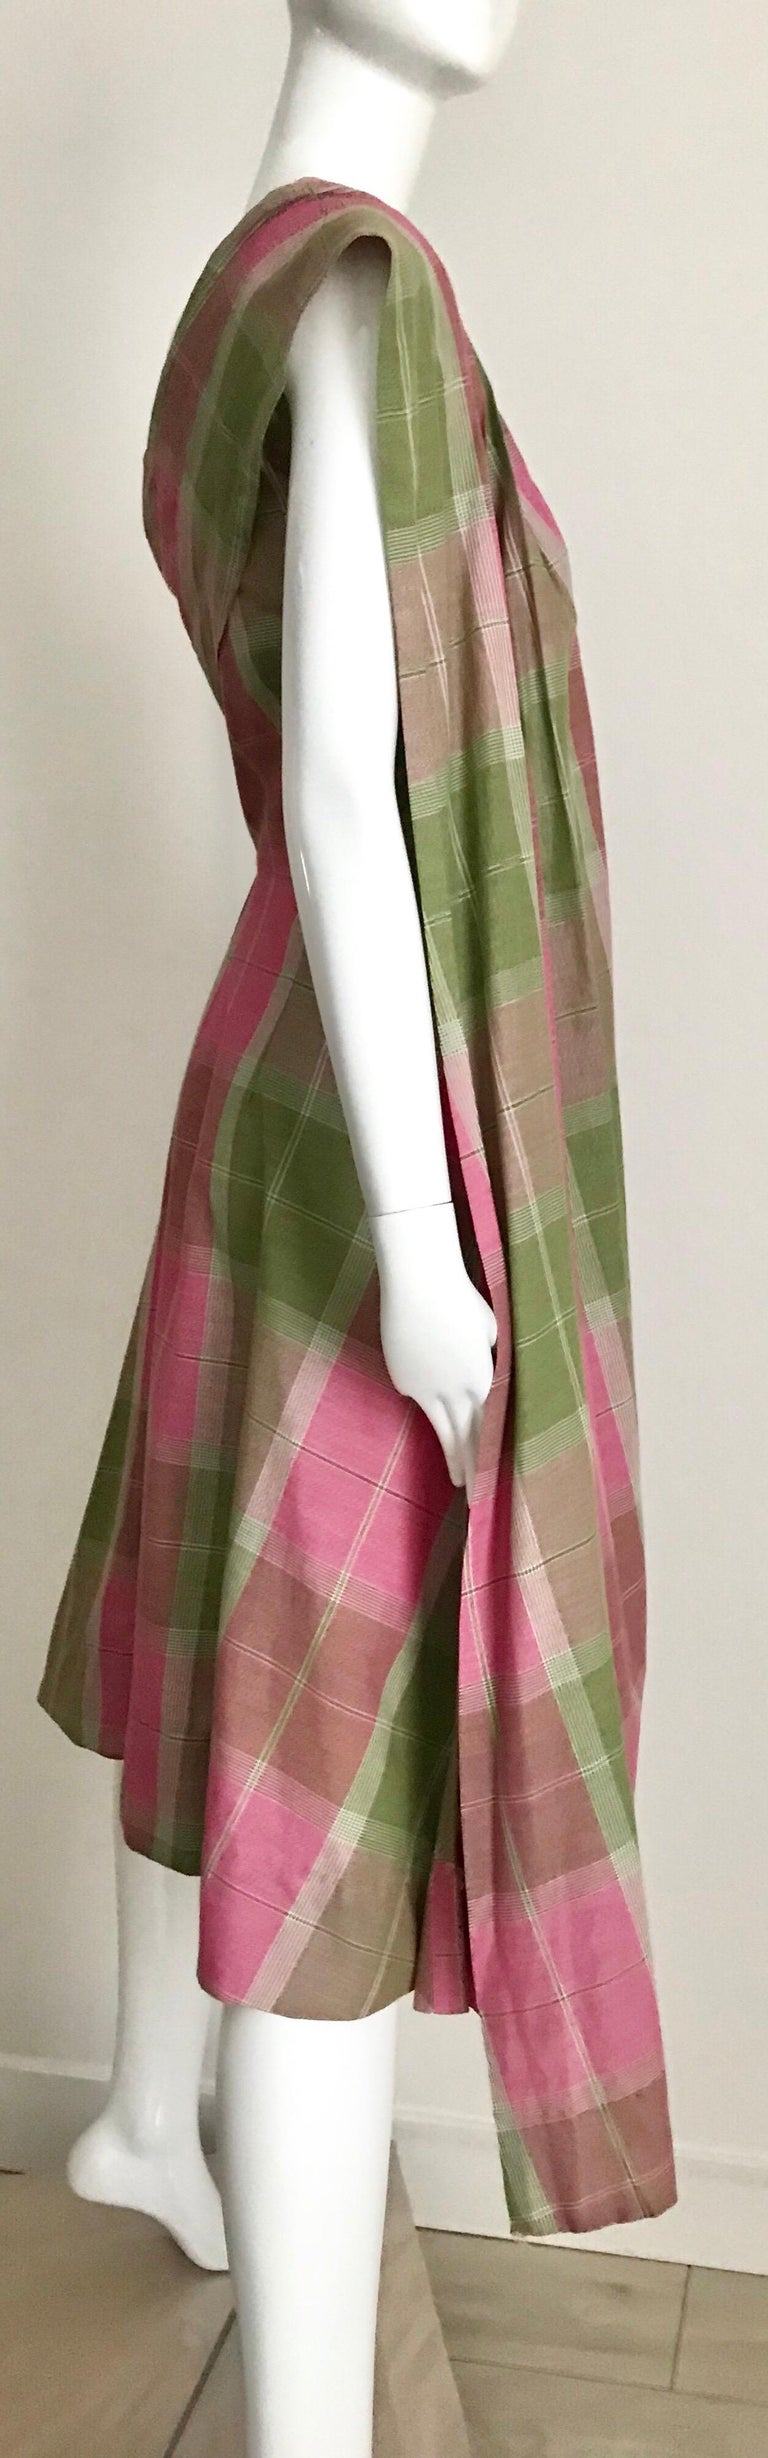 Vintage Tina Lesser Pink and Green Plaid Cotton Dress For Sale 8